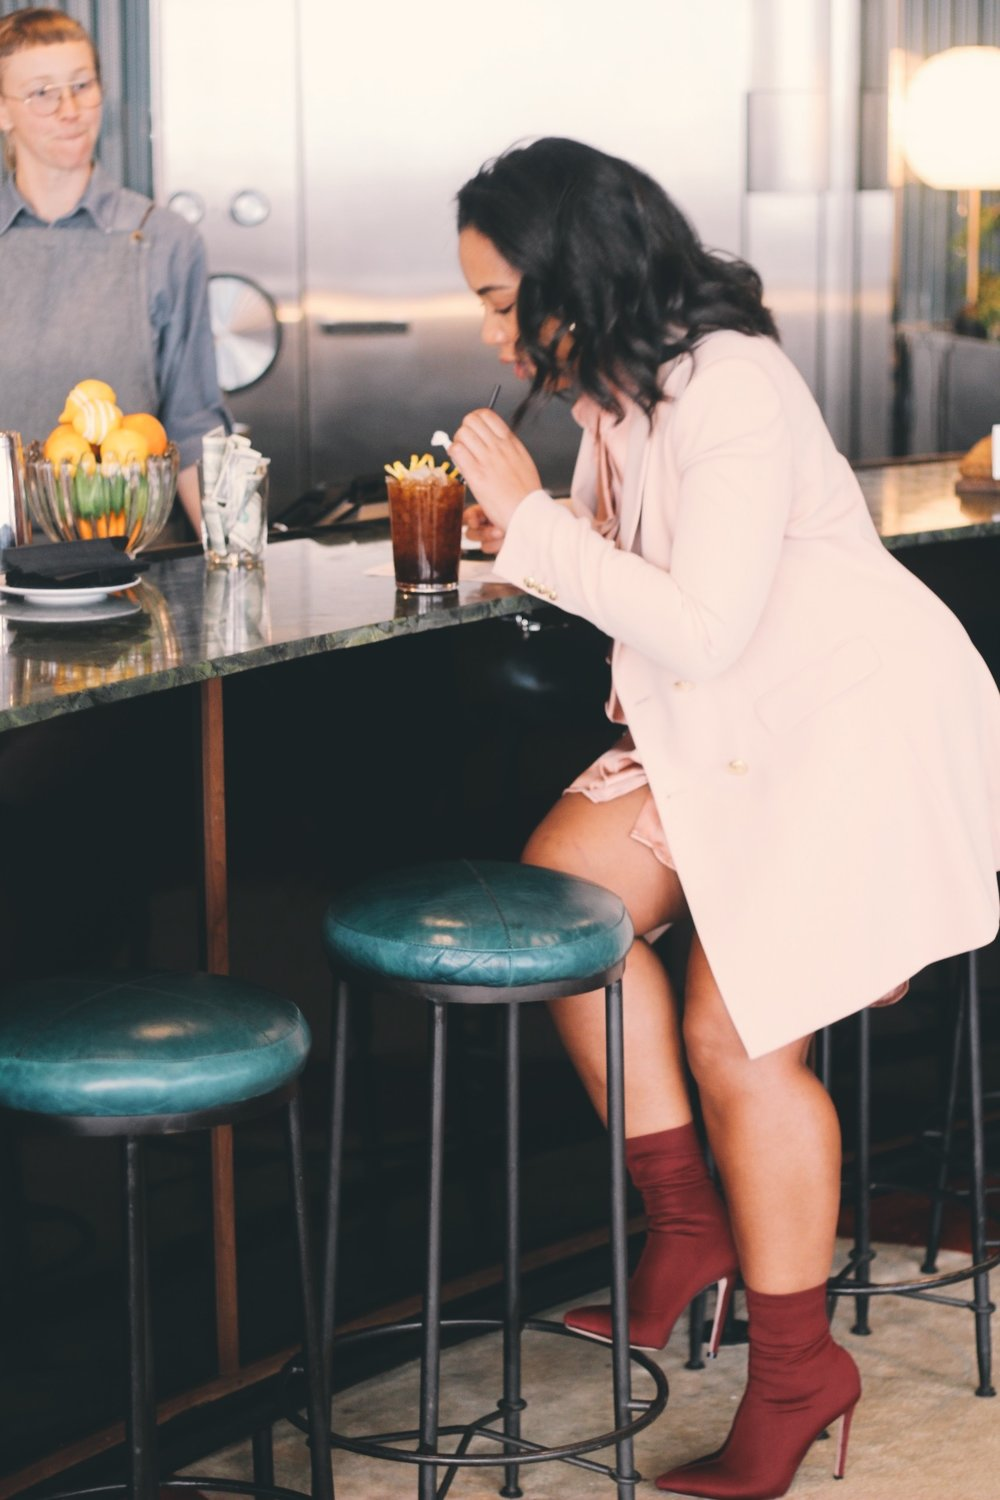 Durham-Hotel-Robinson-Style-Zara-blazer-dress-ruffle-shirt-dress-raid-asos-sock-boots-15.JPG